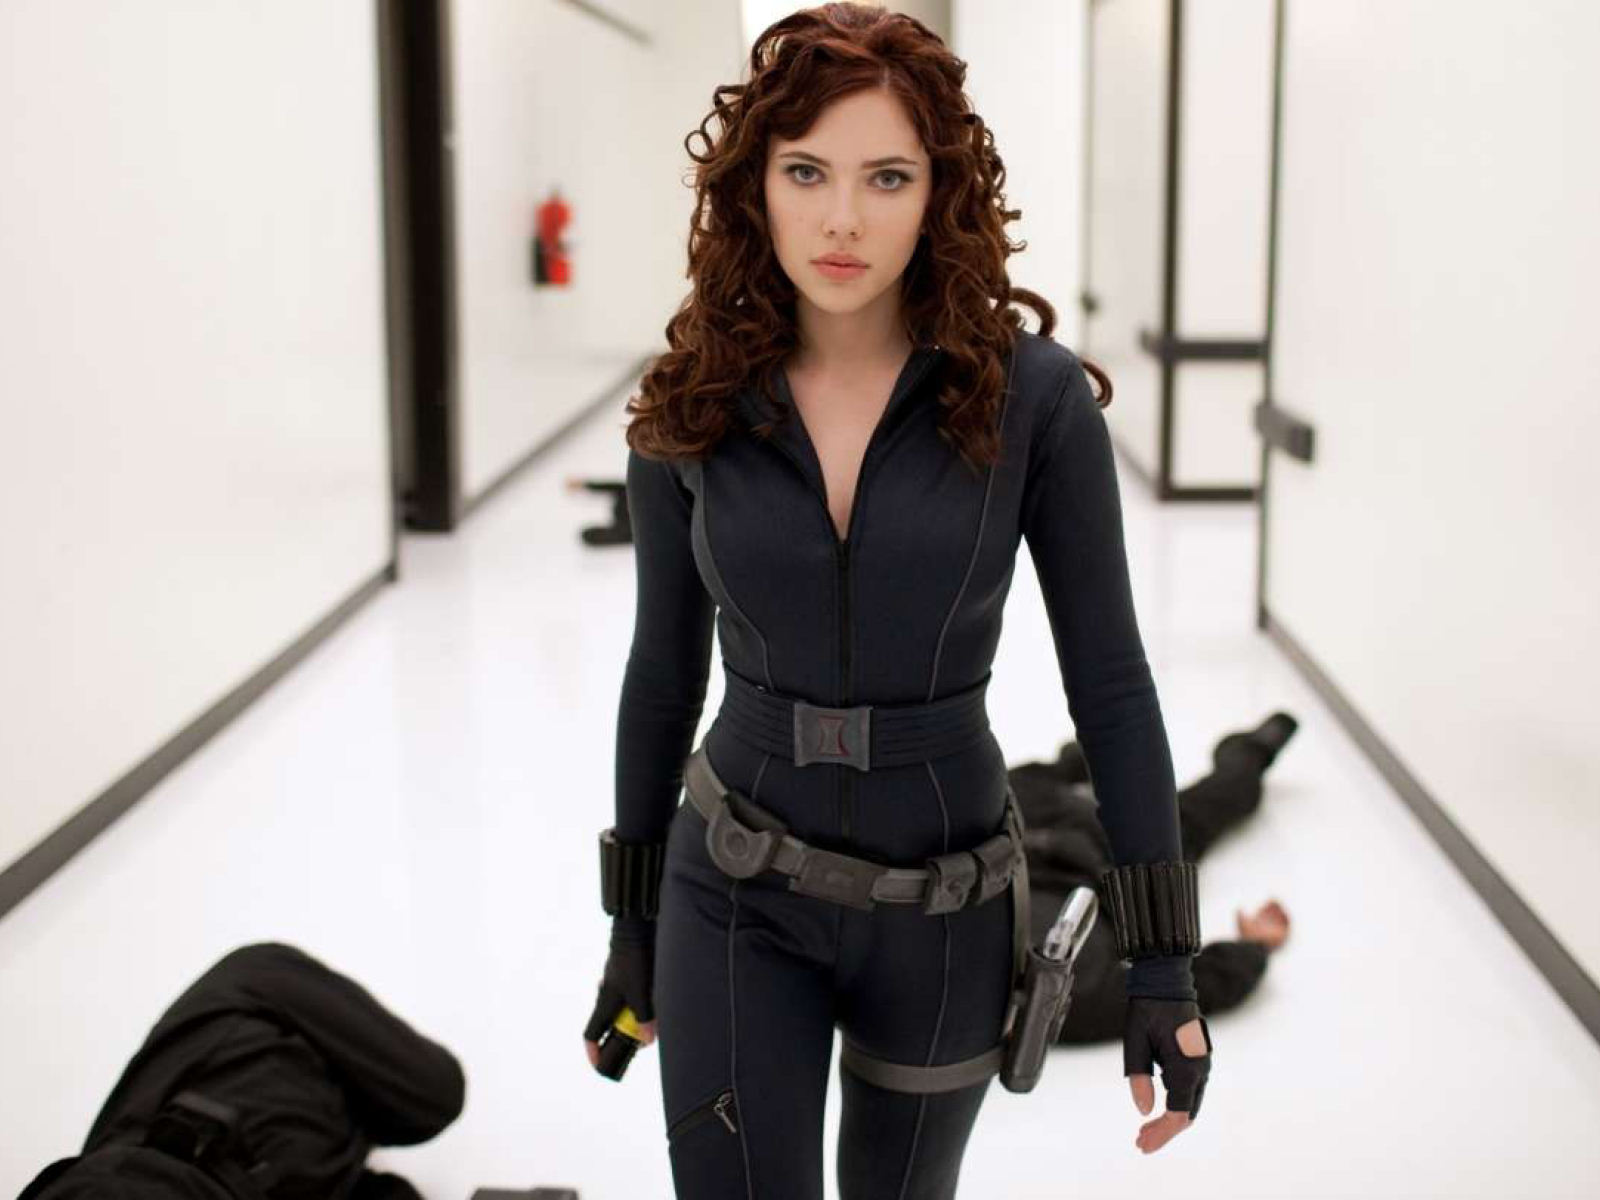 HD Wallpapers Black Widow   Scarlett Johansson   The Avengers 1 1600x1200